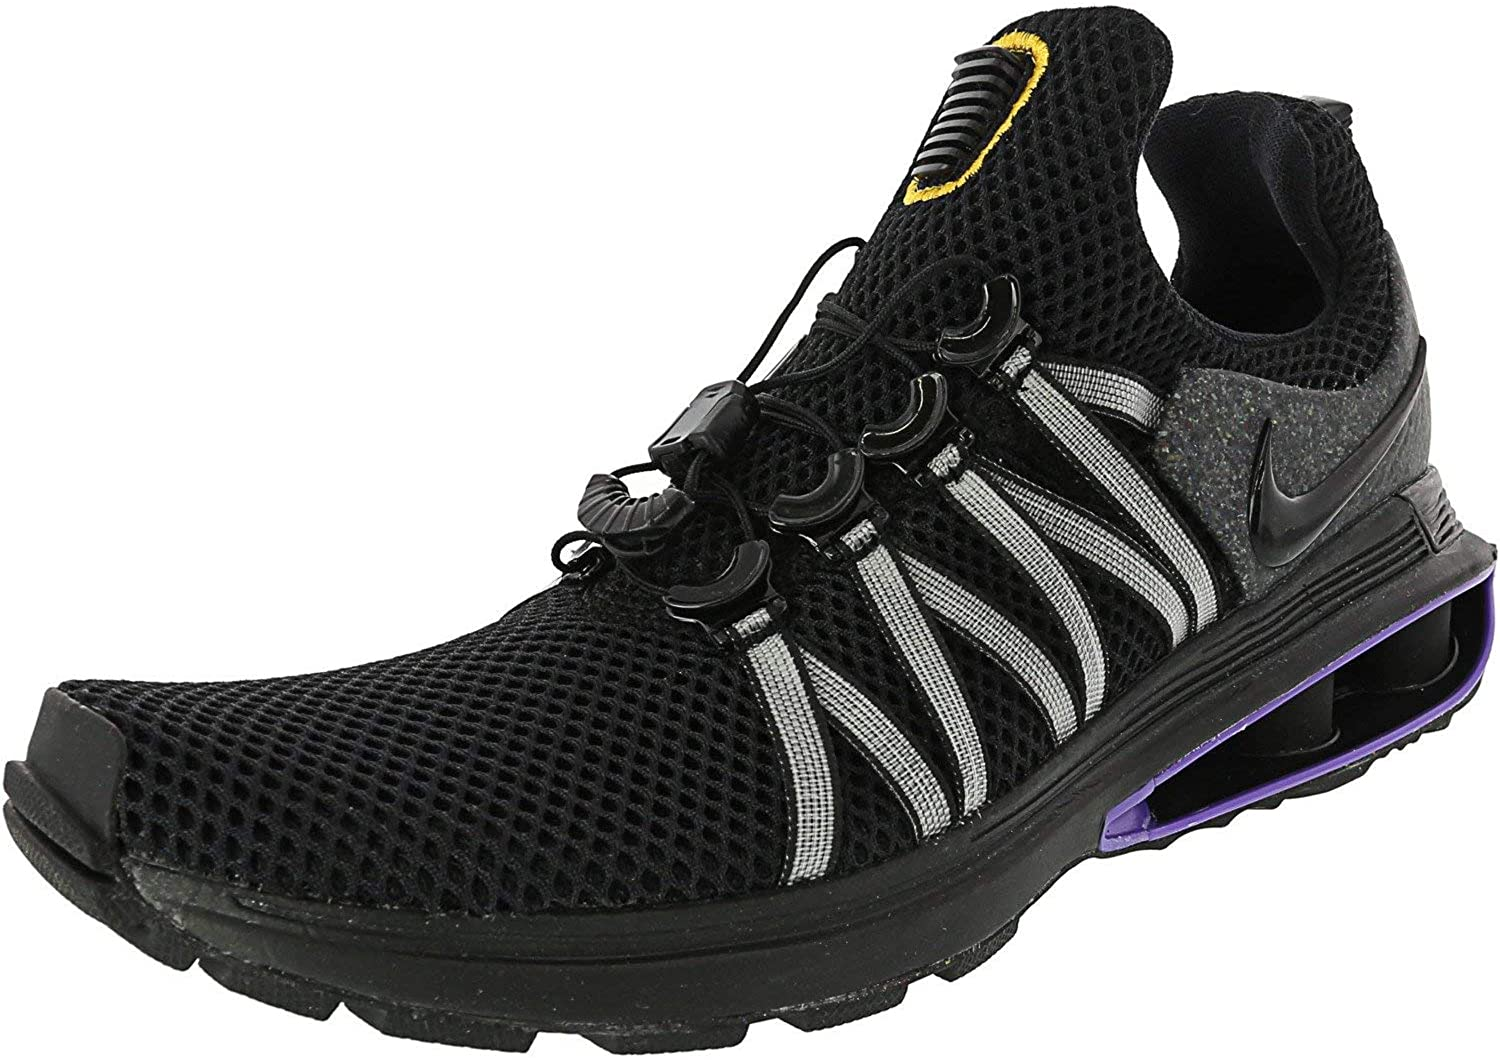 Nike Men's Shox Gravity Ankle-High Running Shoe